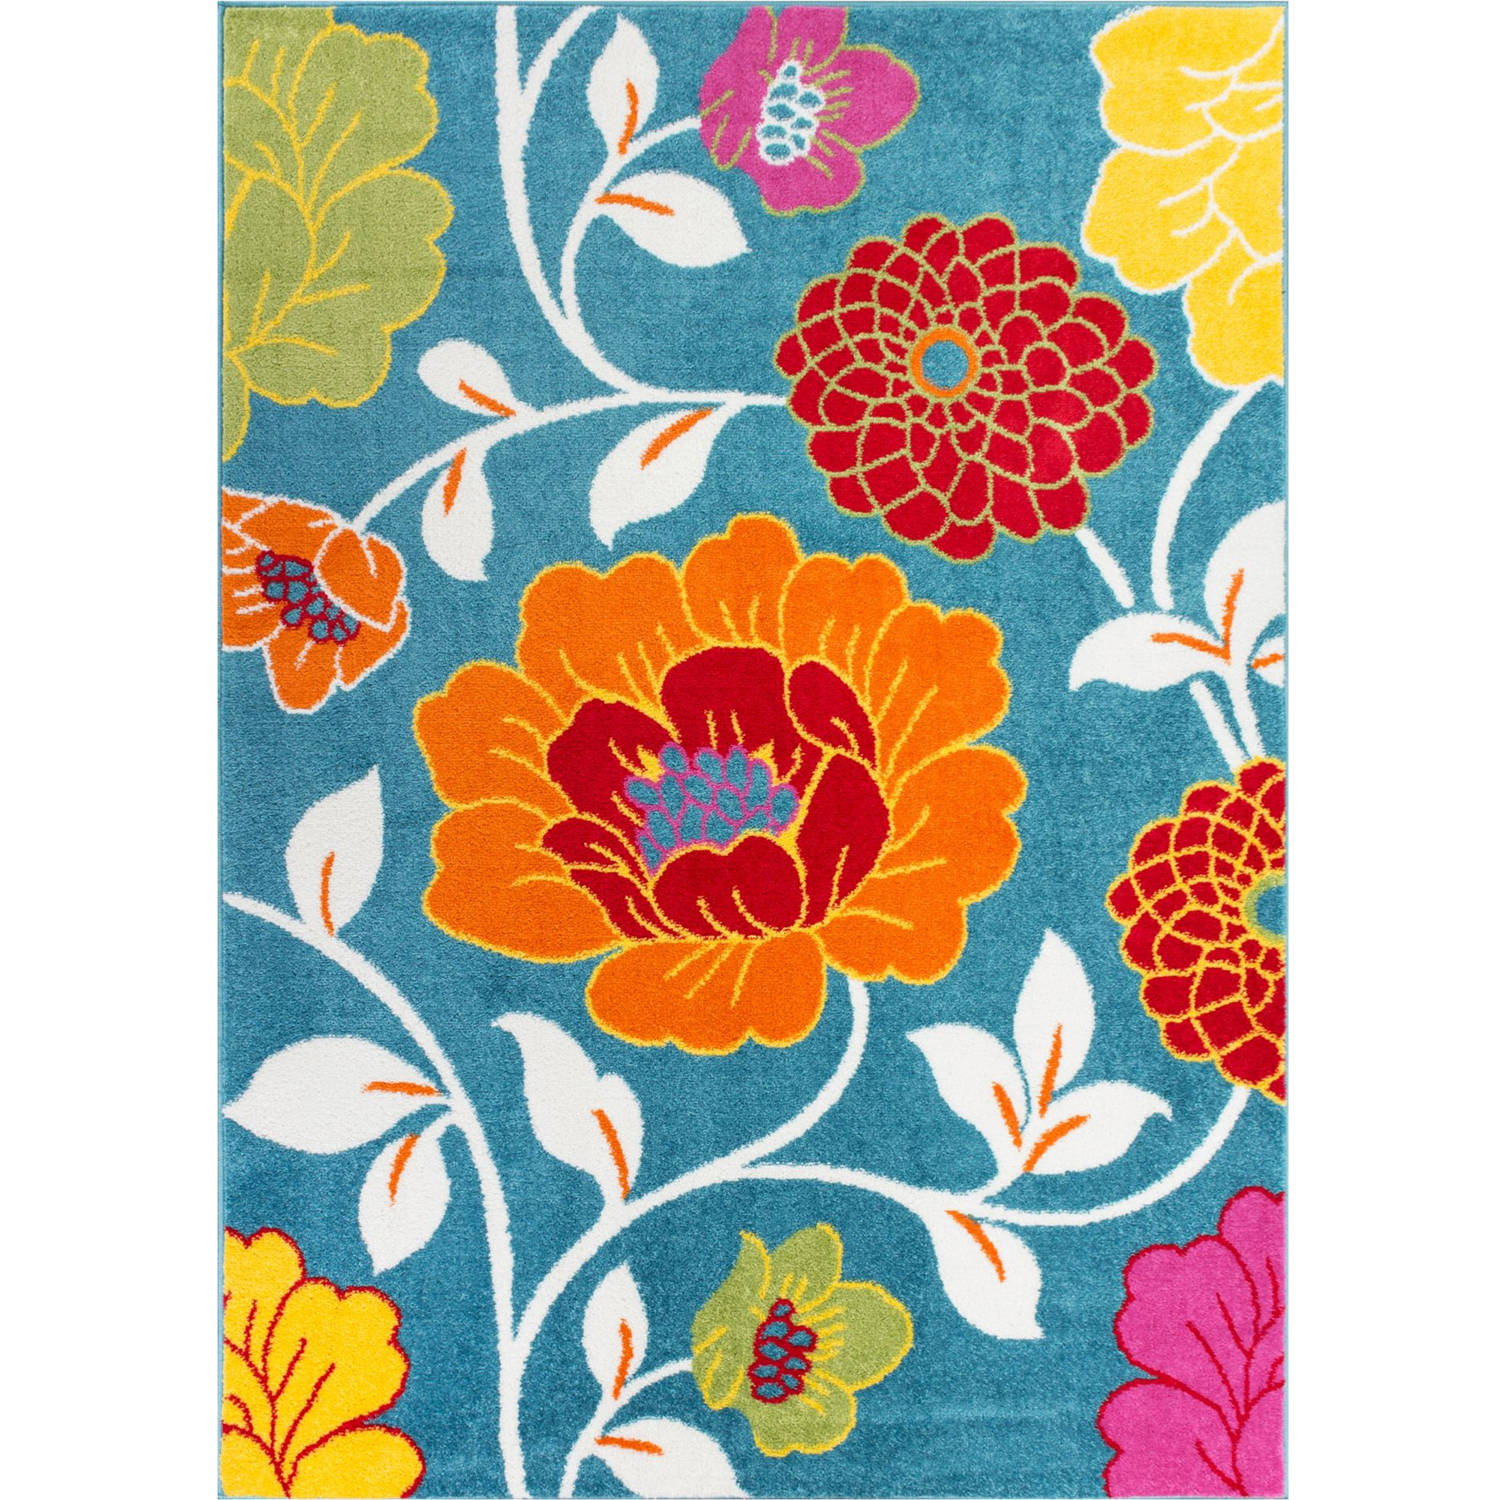 Well Woven StarBright Daisy Flowers Kids Area Rug, Blue